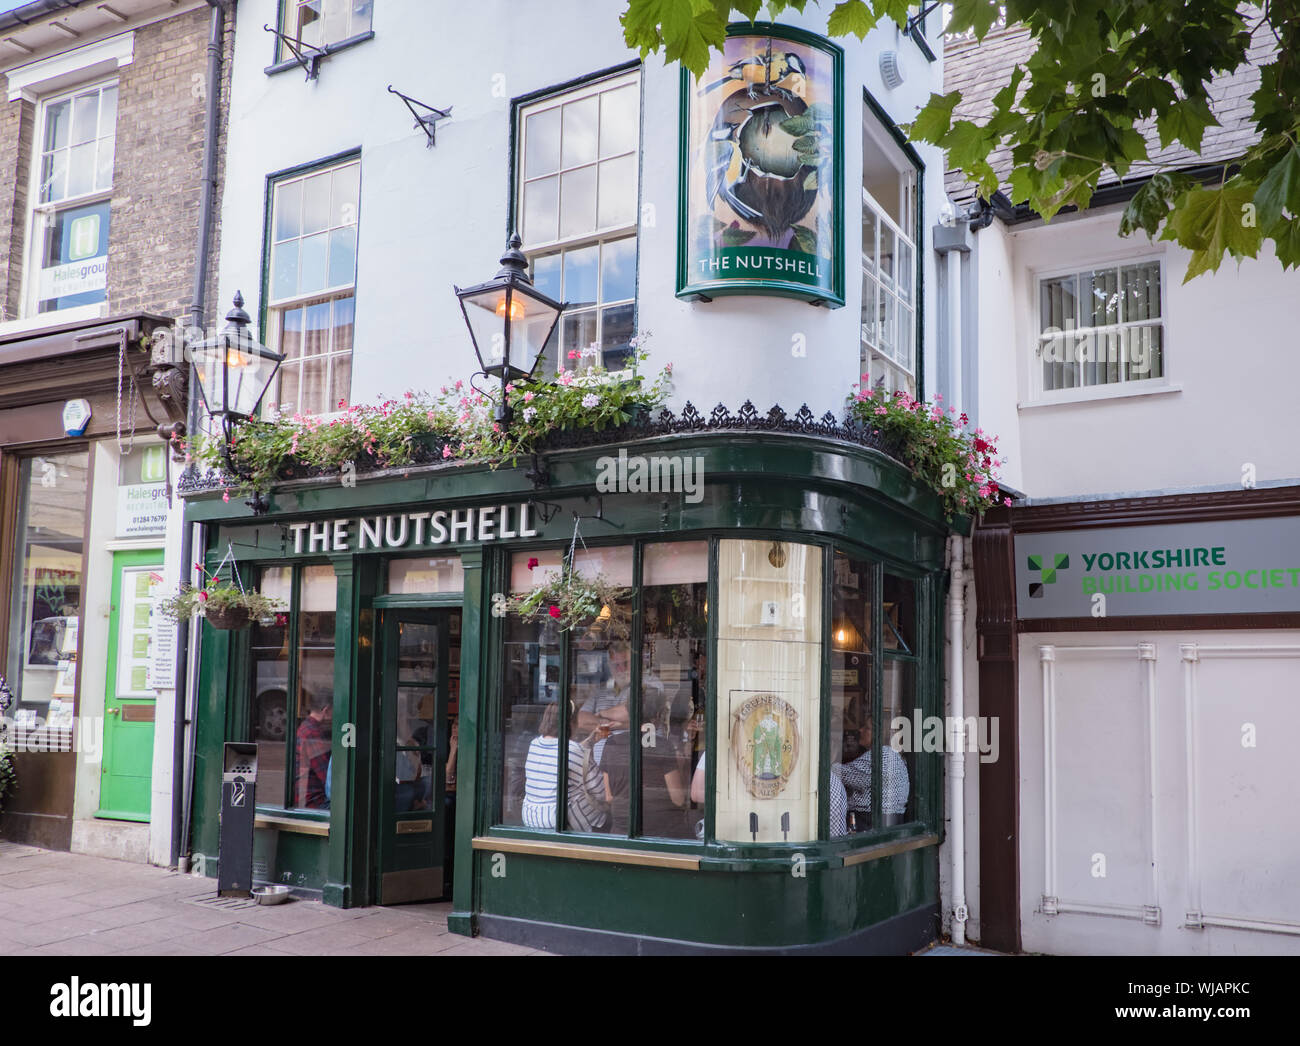 External view of The Nutshell Pub, known as the smallest pub in Britain. Bury St Edmunds, Suffolk, UK Stock Photo